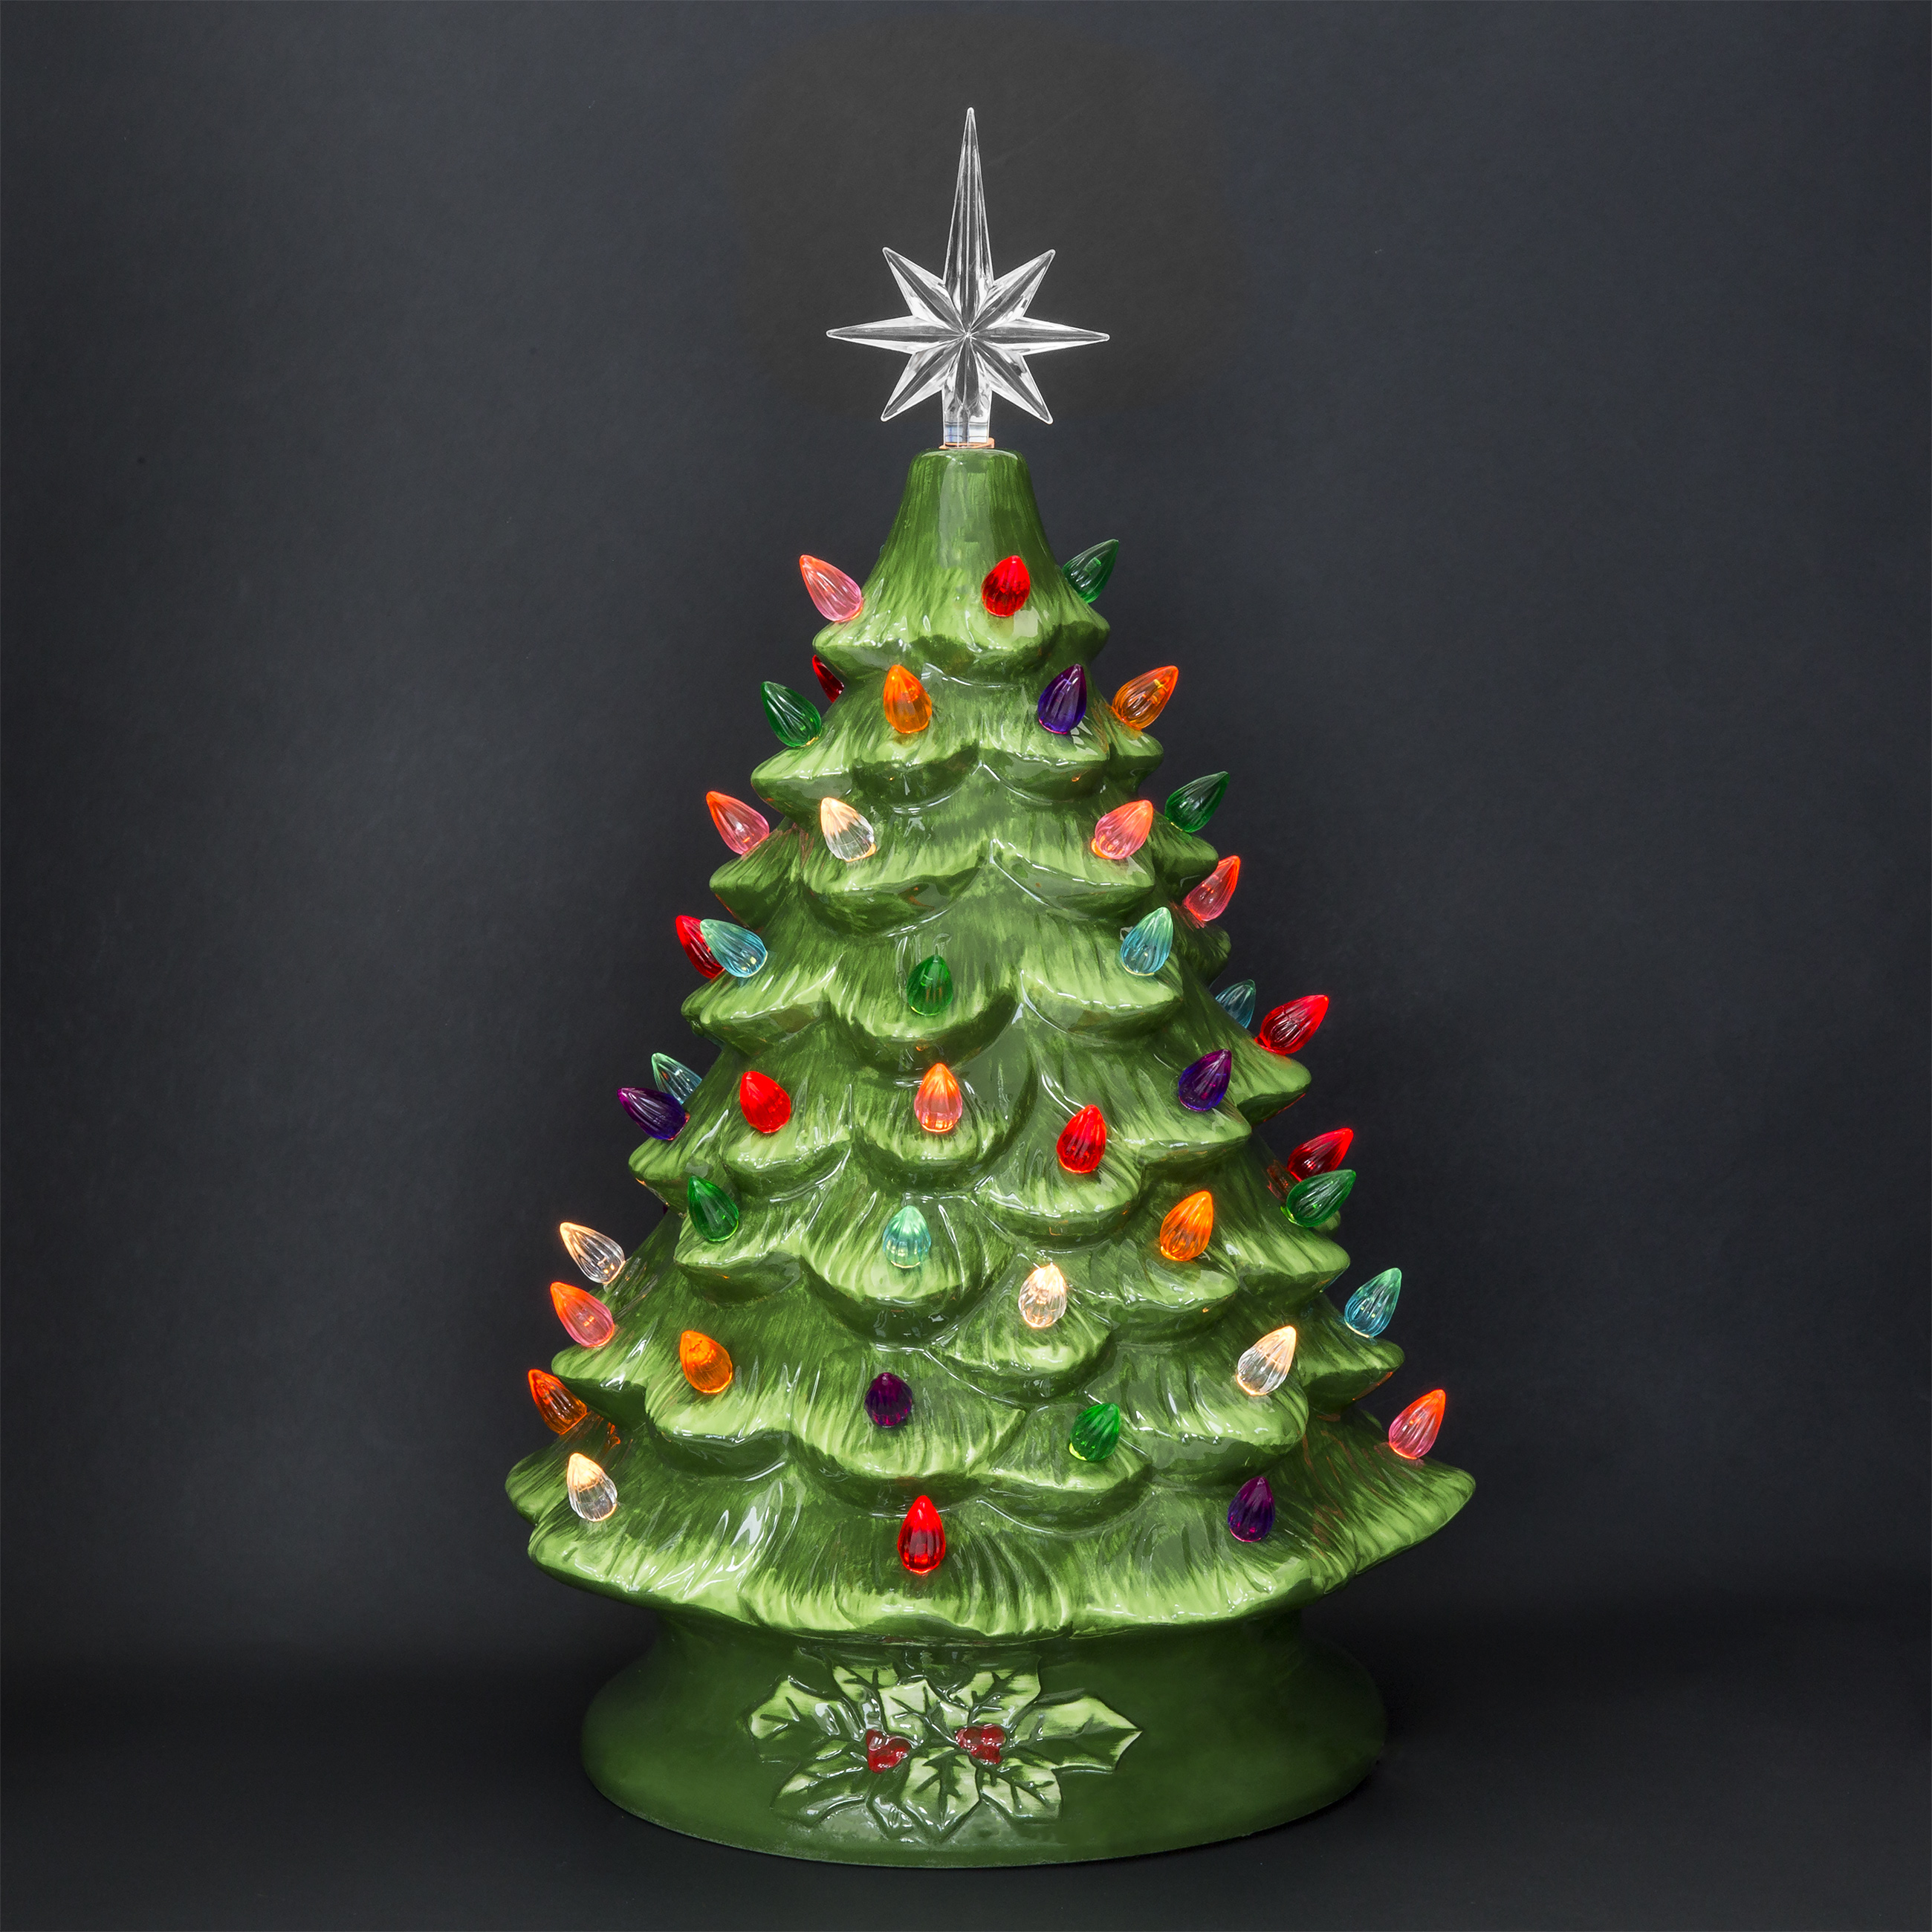 Best Choice Products 15in Pre Lit Hand Painted Ceramic Tabletop Christmas Tree W 64 Lights Green Walmart Com Walmart Com